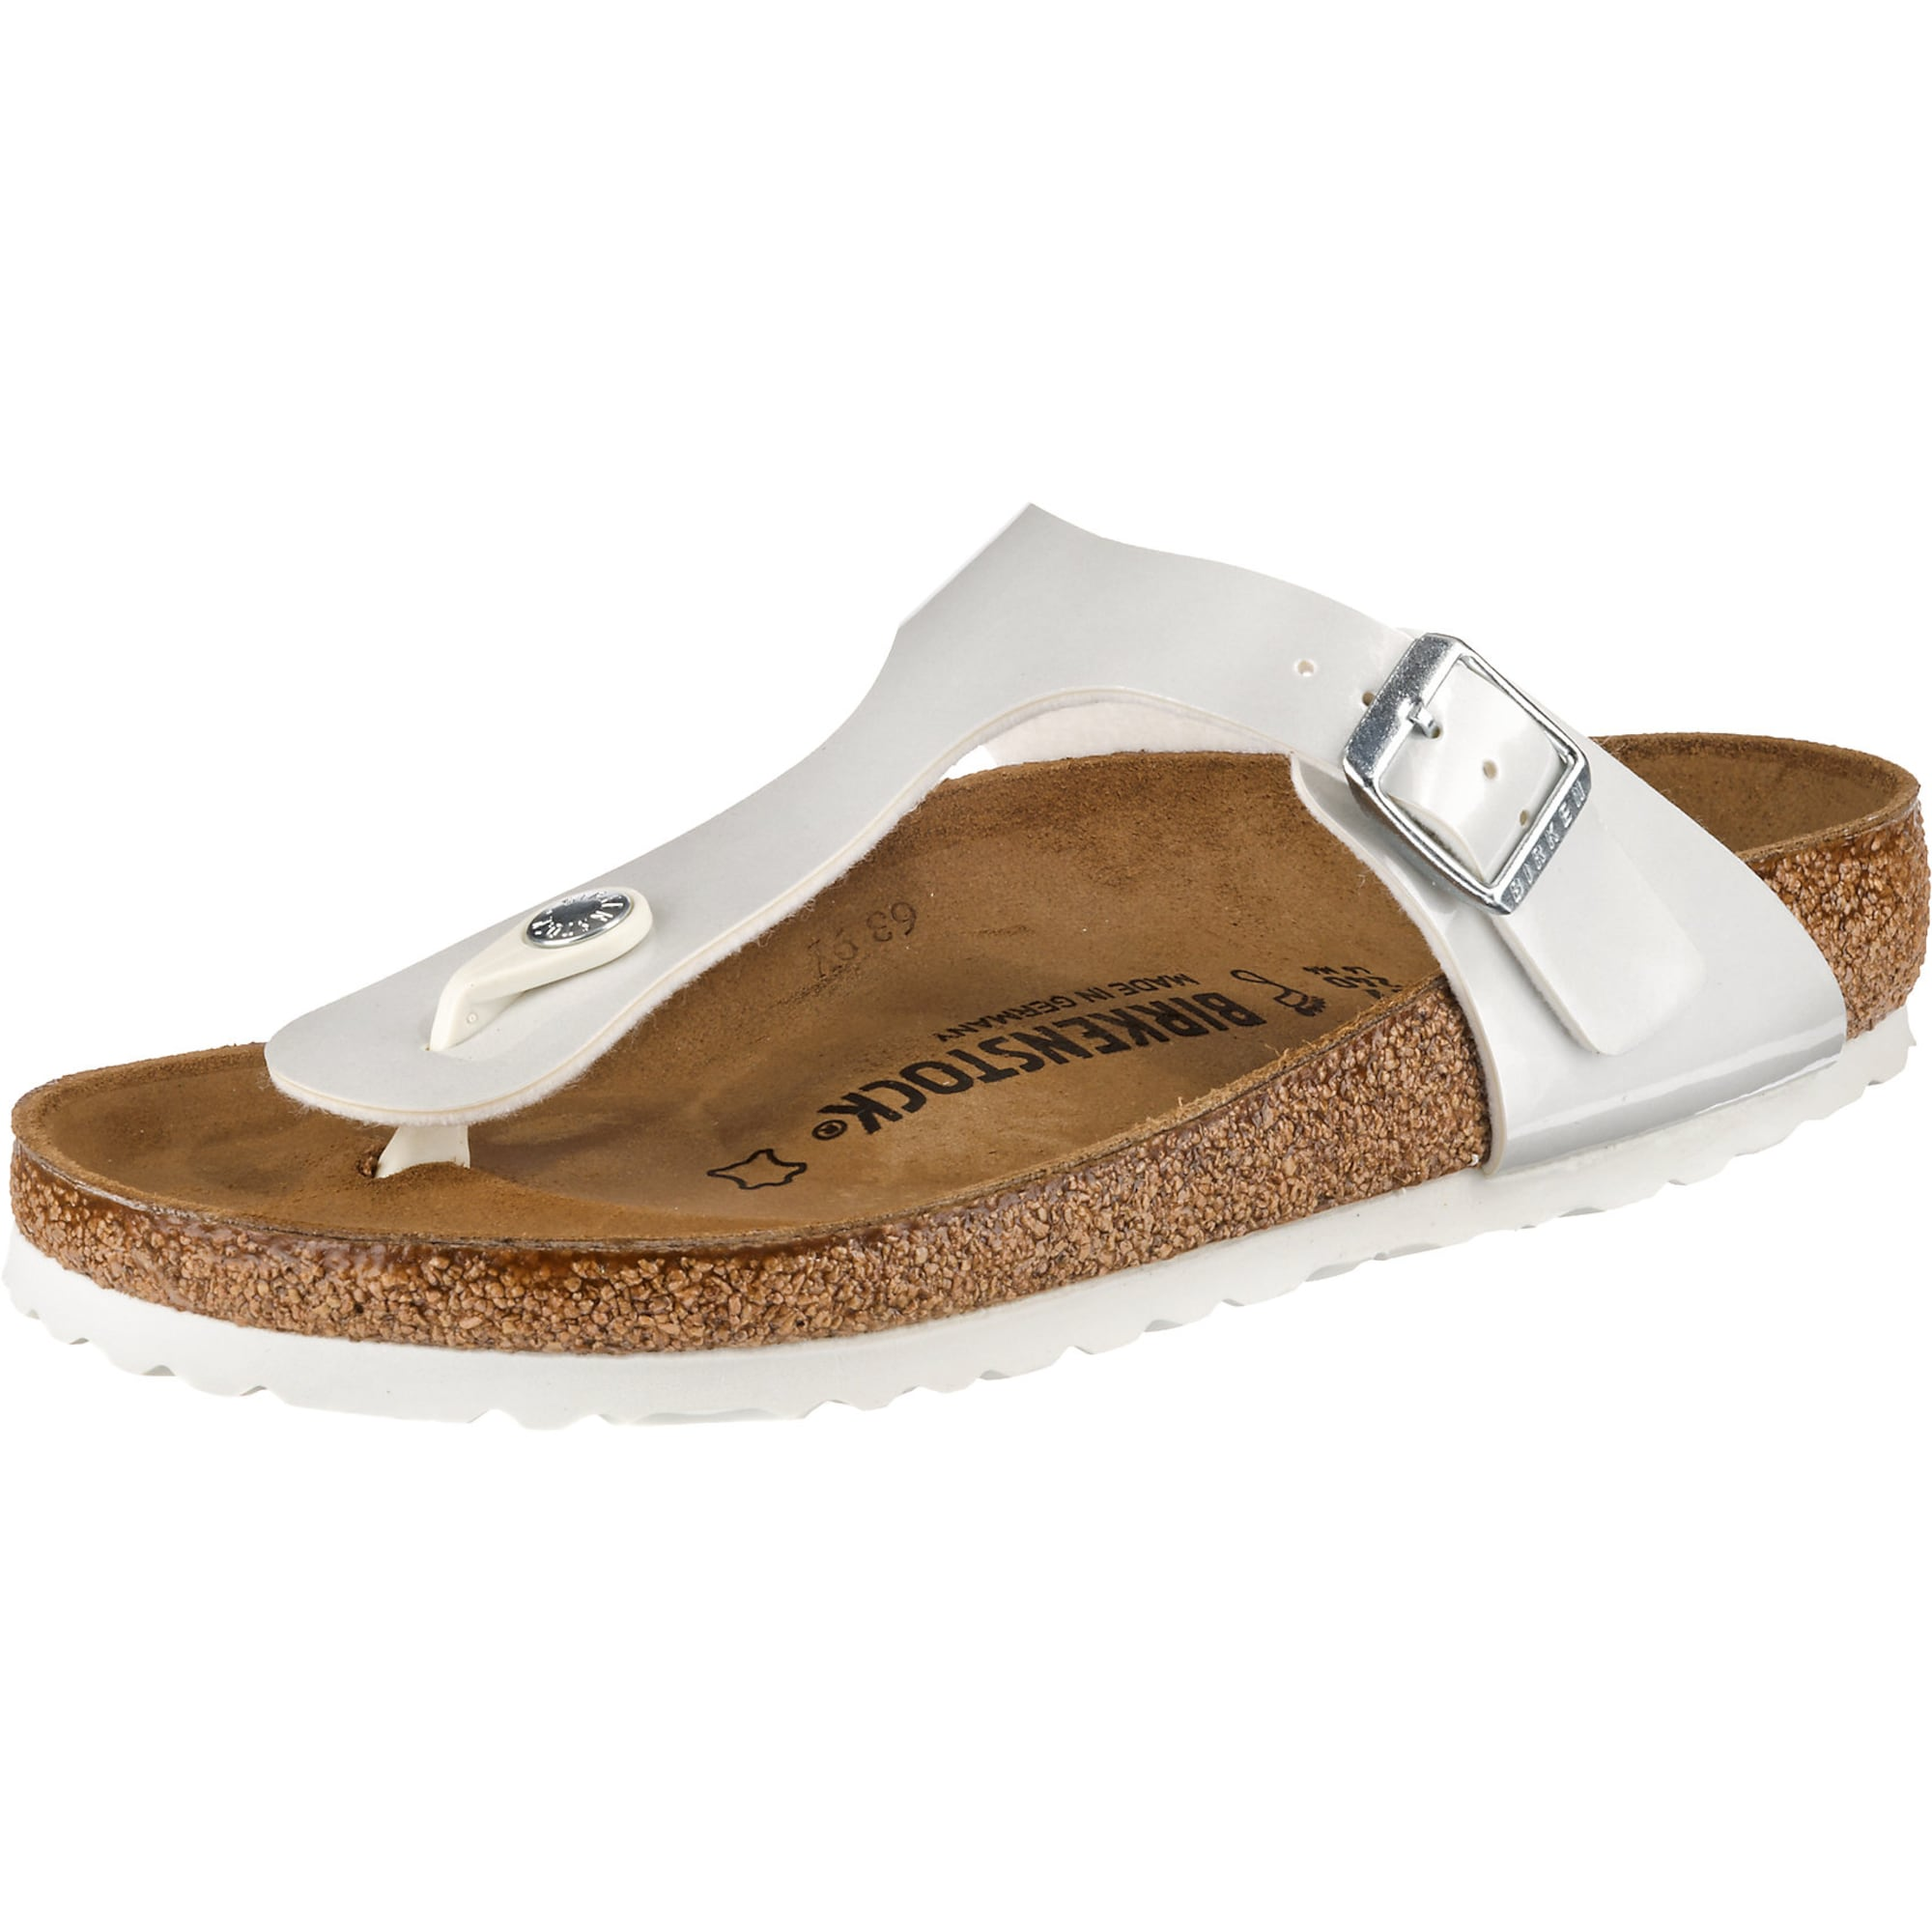 Zehentrenner 'Gizeh Bf Pearly White'   Schuhe > Sandalen & Zehentrenner > Zehentrenner   Weiß   Birkenstock